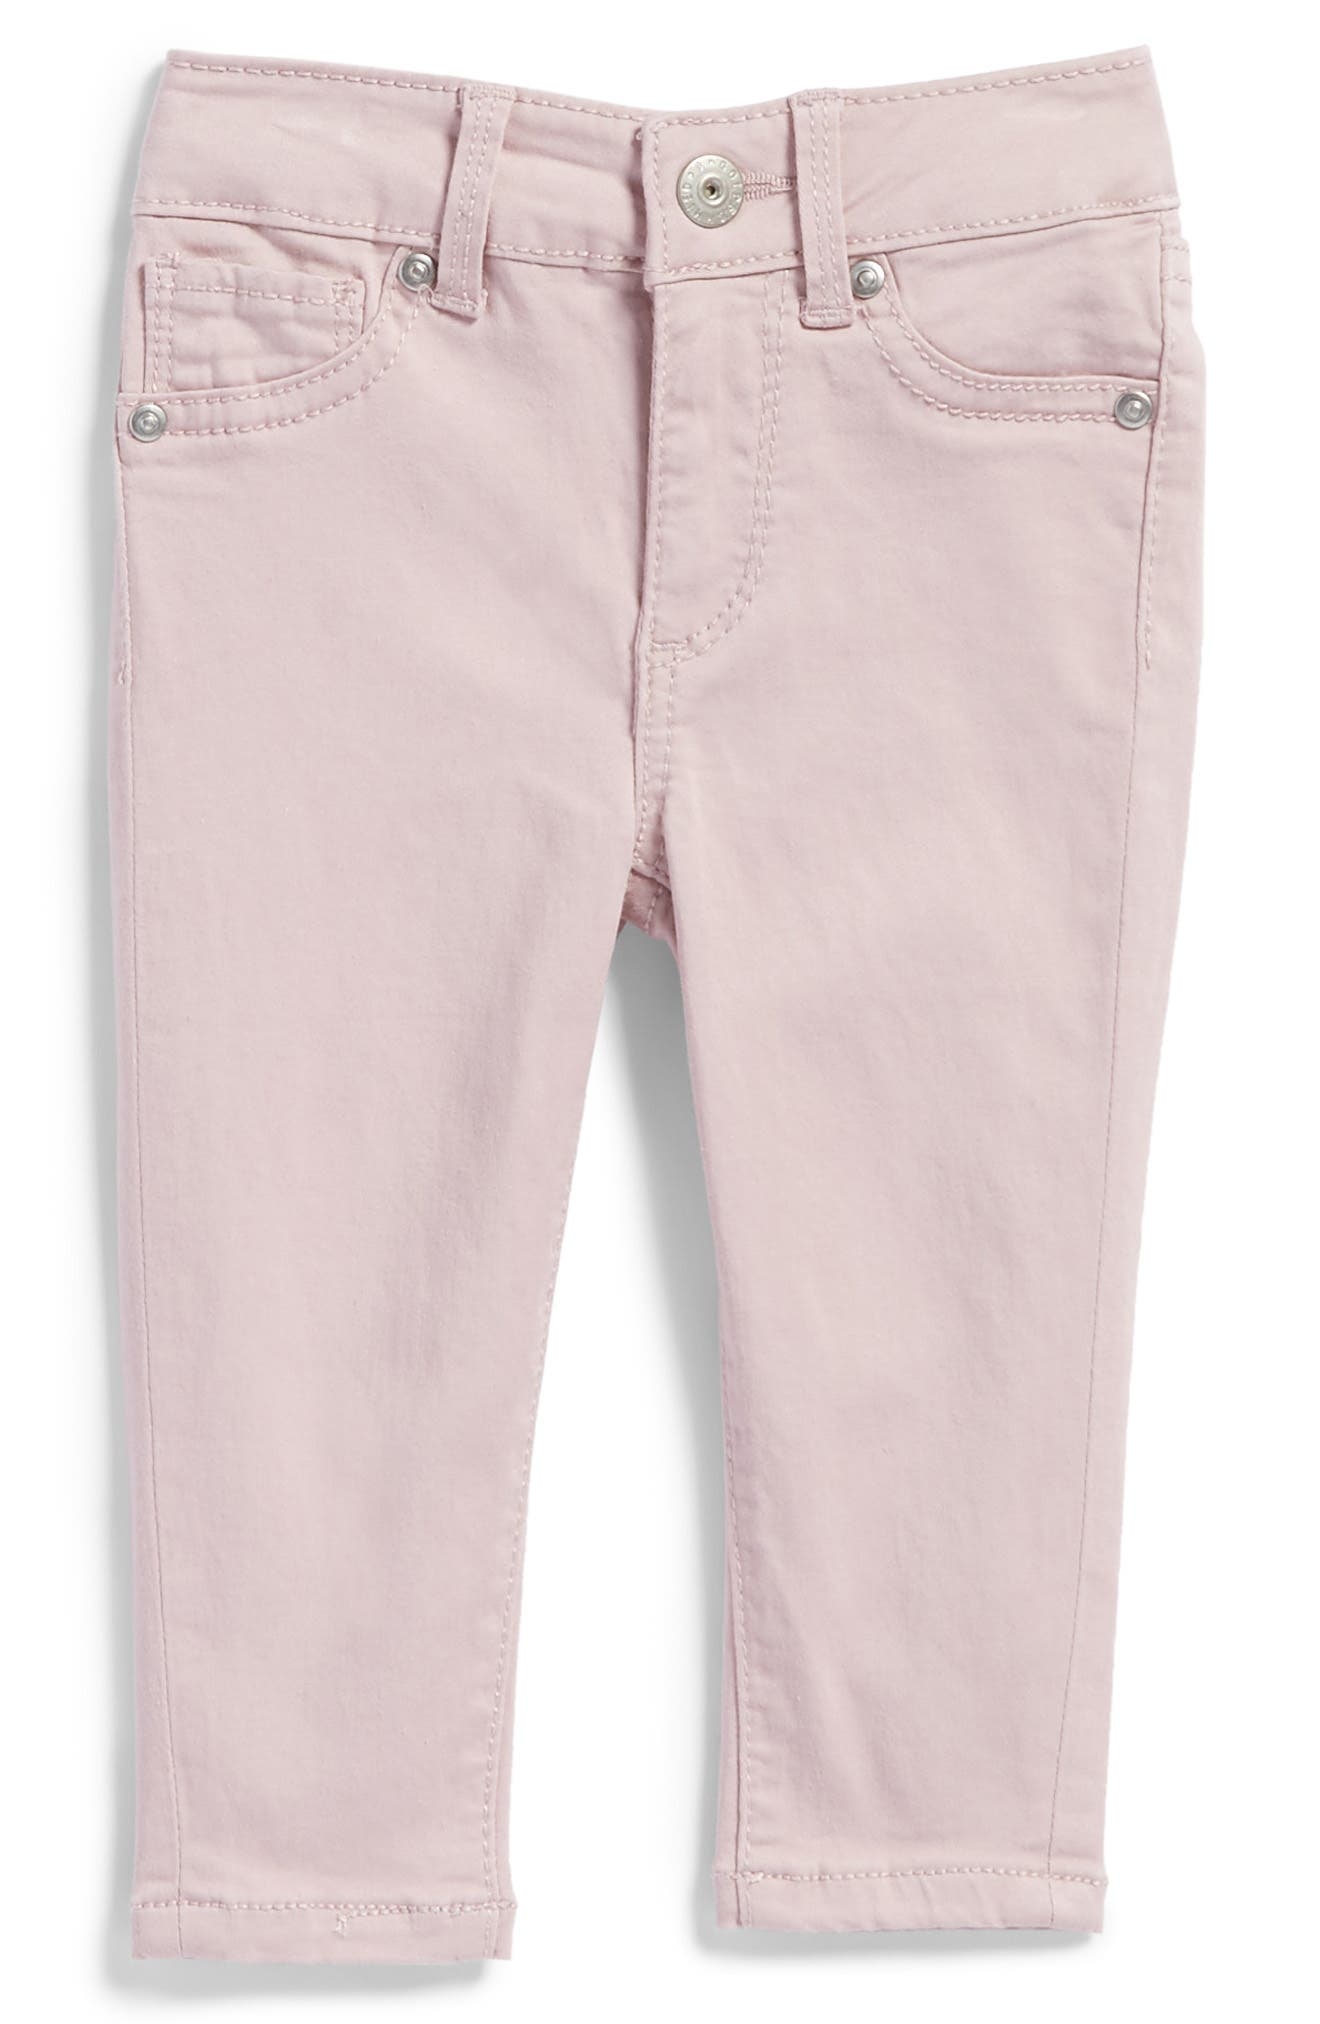 Main Image - ag adriano goldschmied kids Twiggy Ankle Skinny Jeans (Baby Girls)